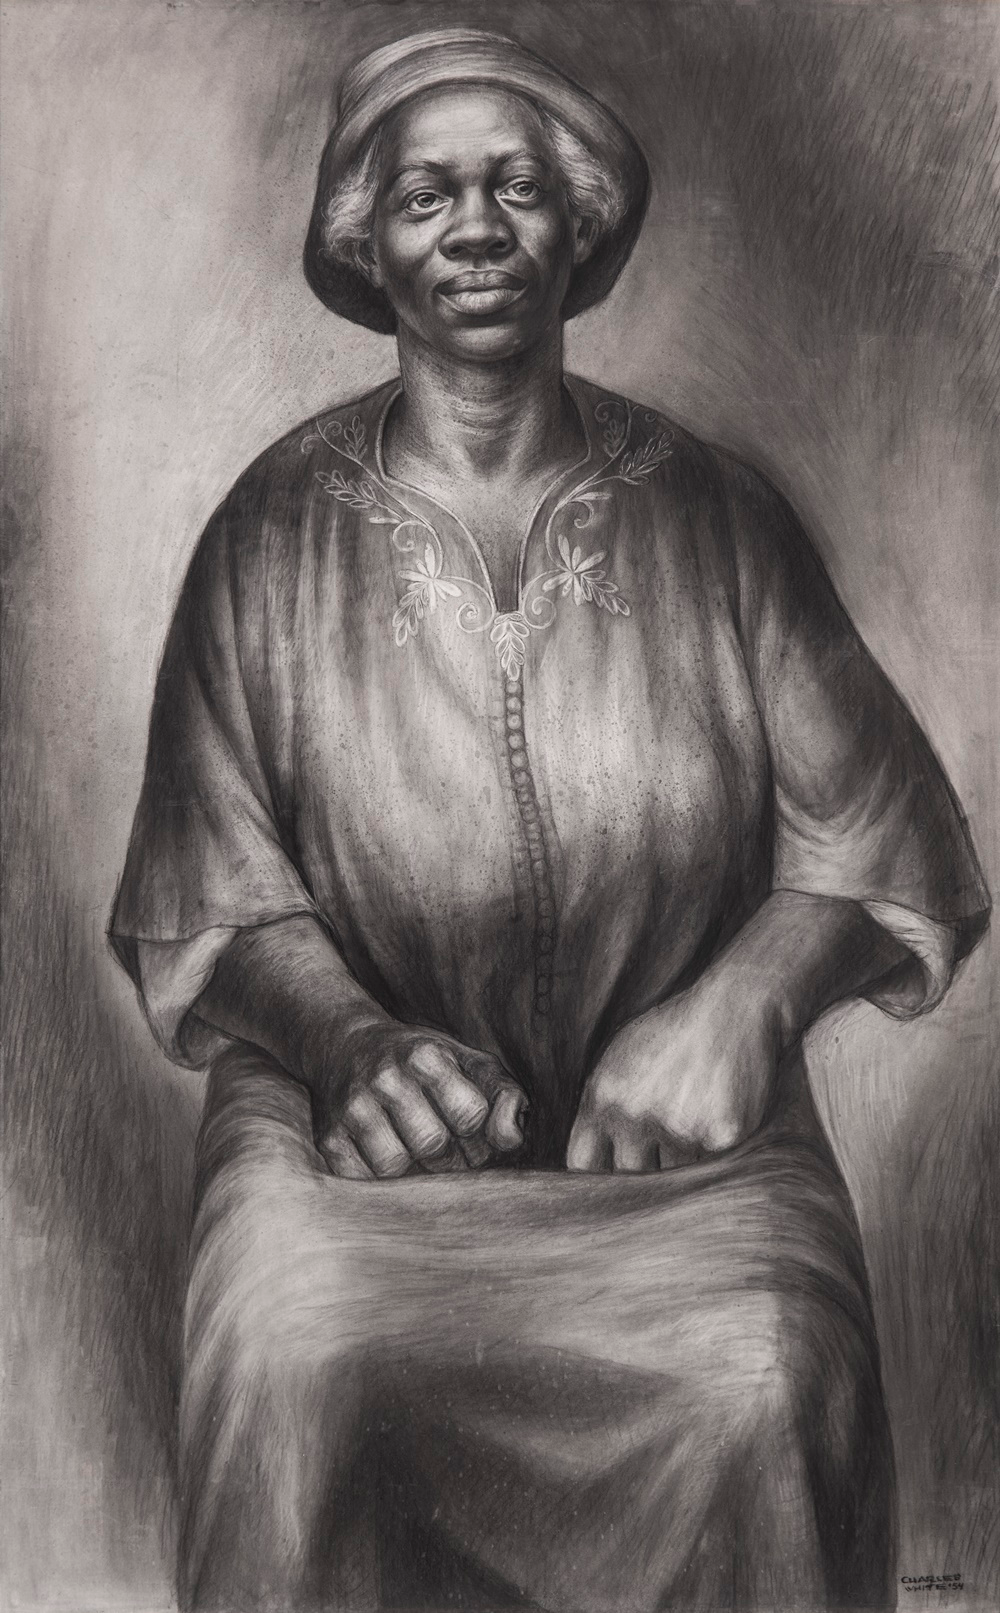 Charles White Inspired Some of Today's Most Famous Artists